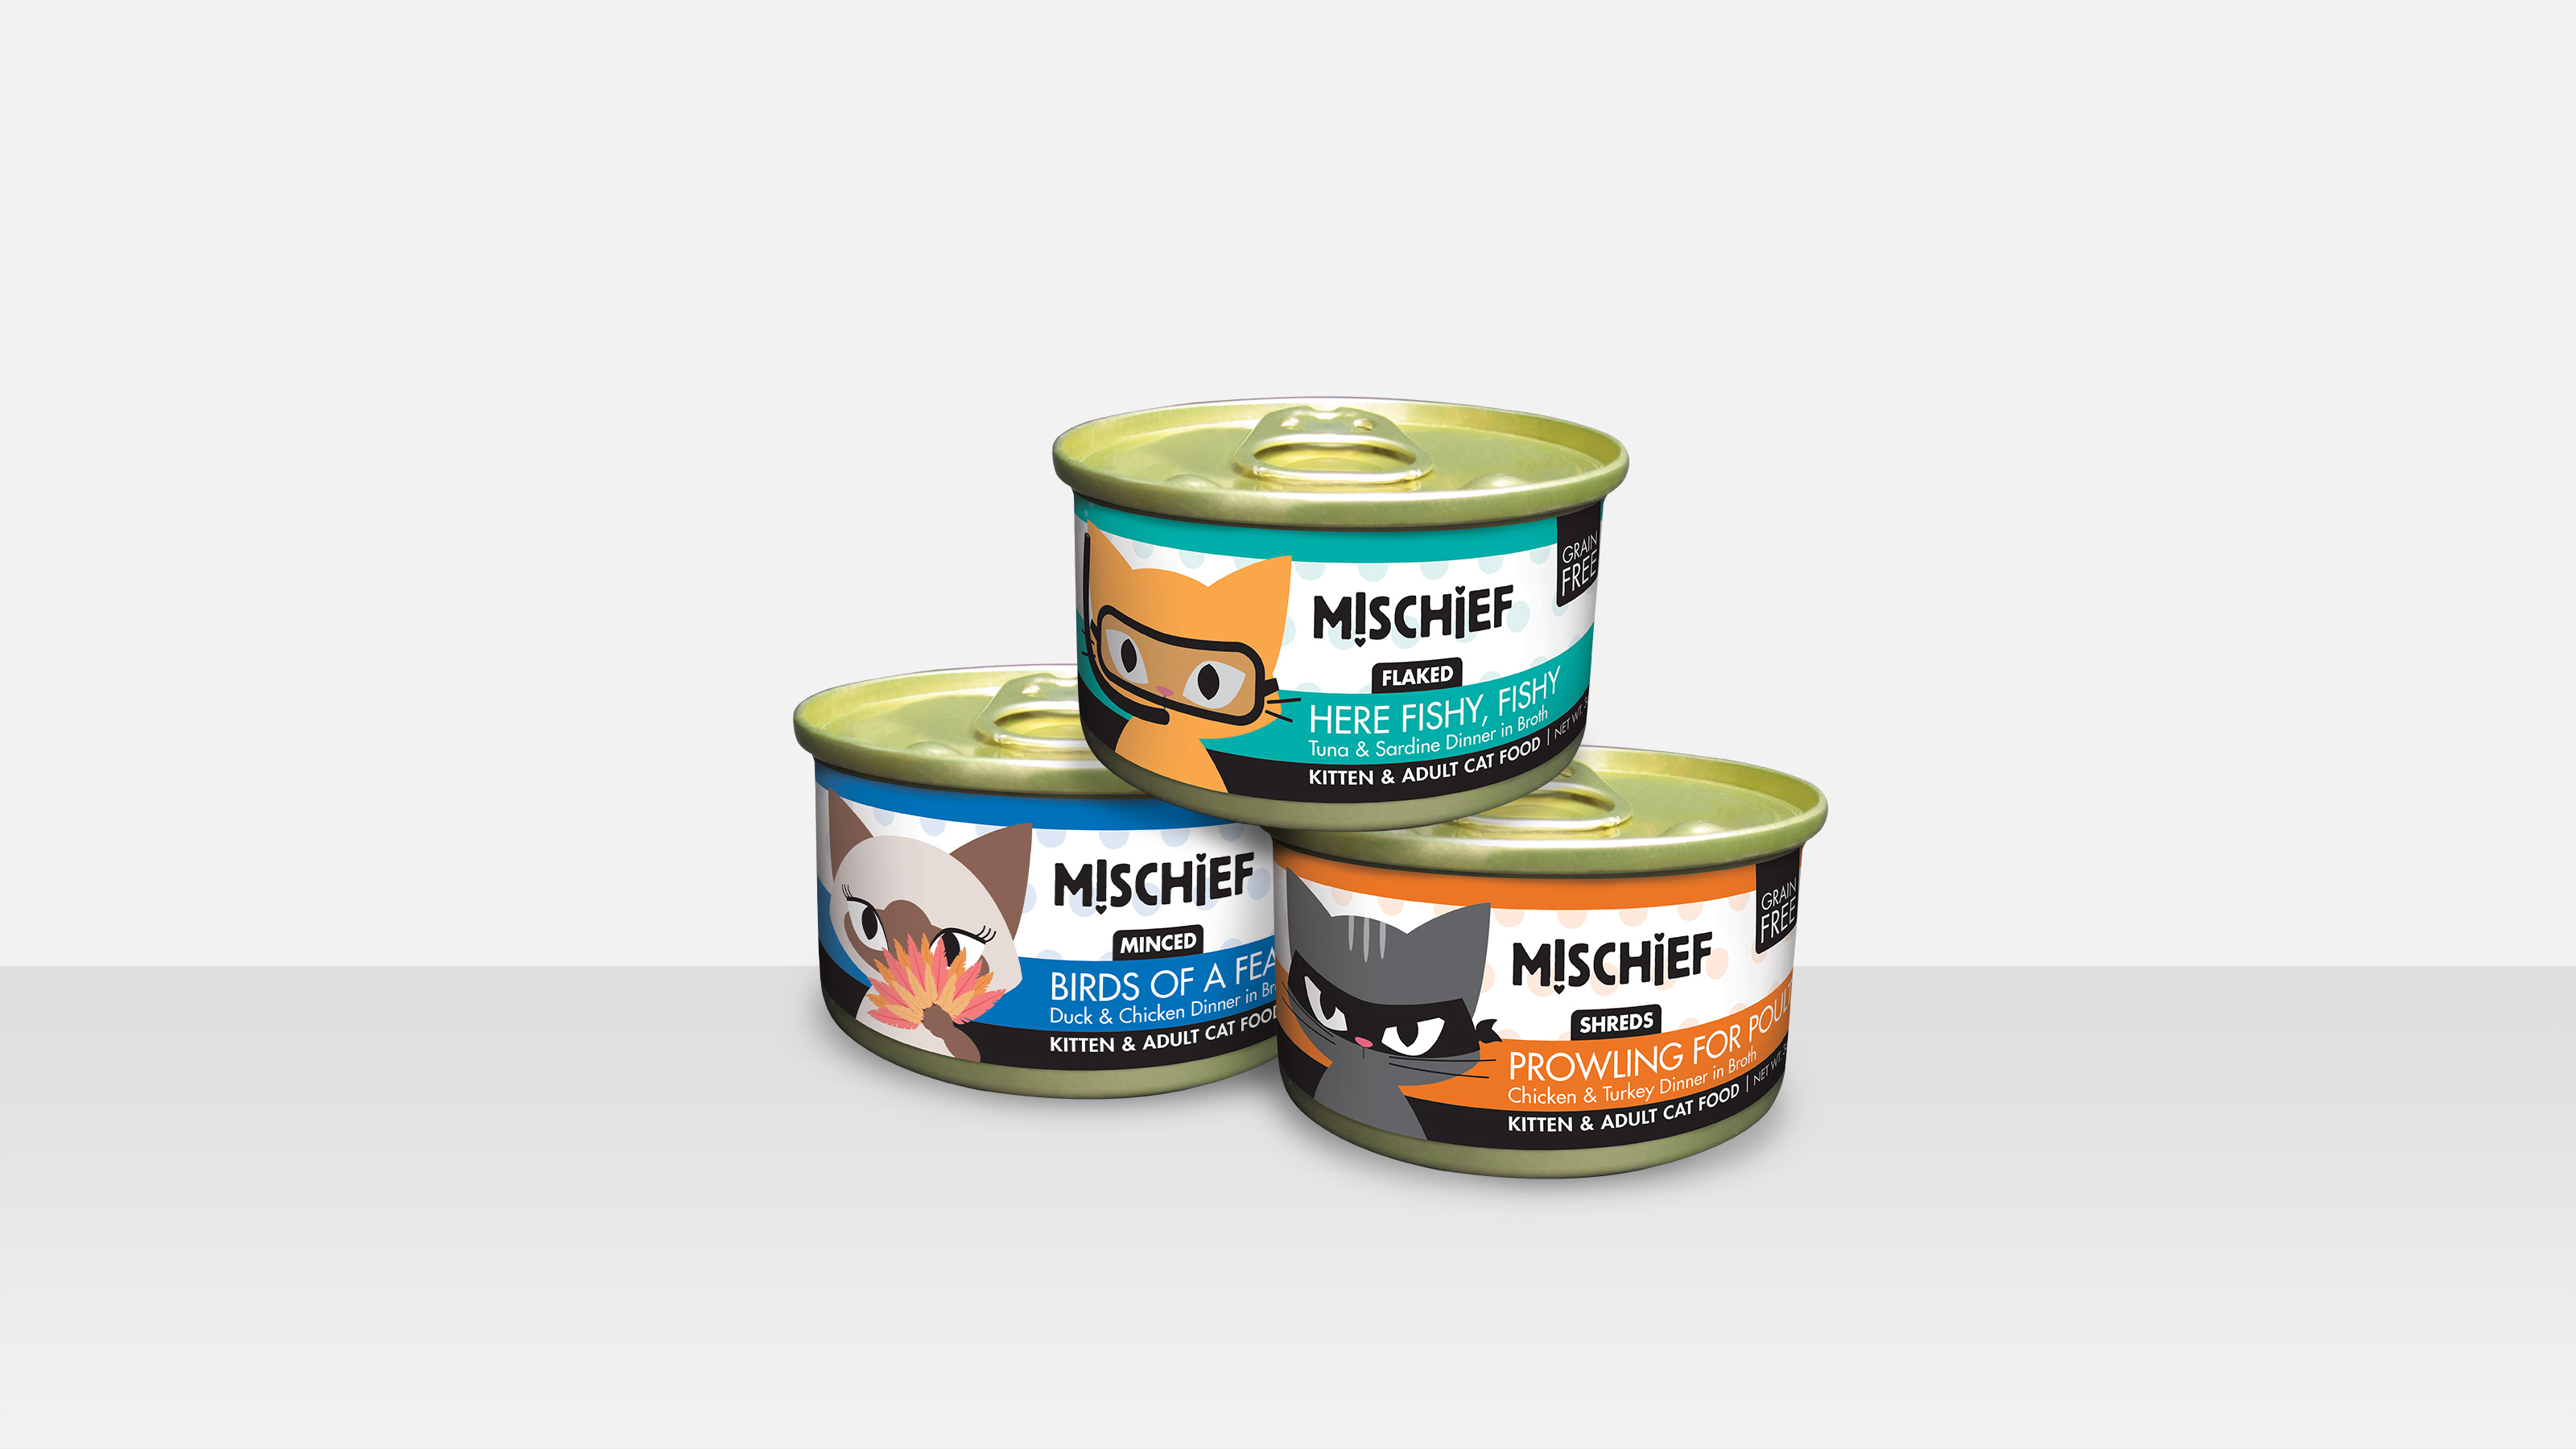 CANIDAE Grain Free 3 cans (blue, green and orange) of M!SCHIEF kitten & adult cat food